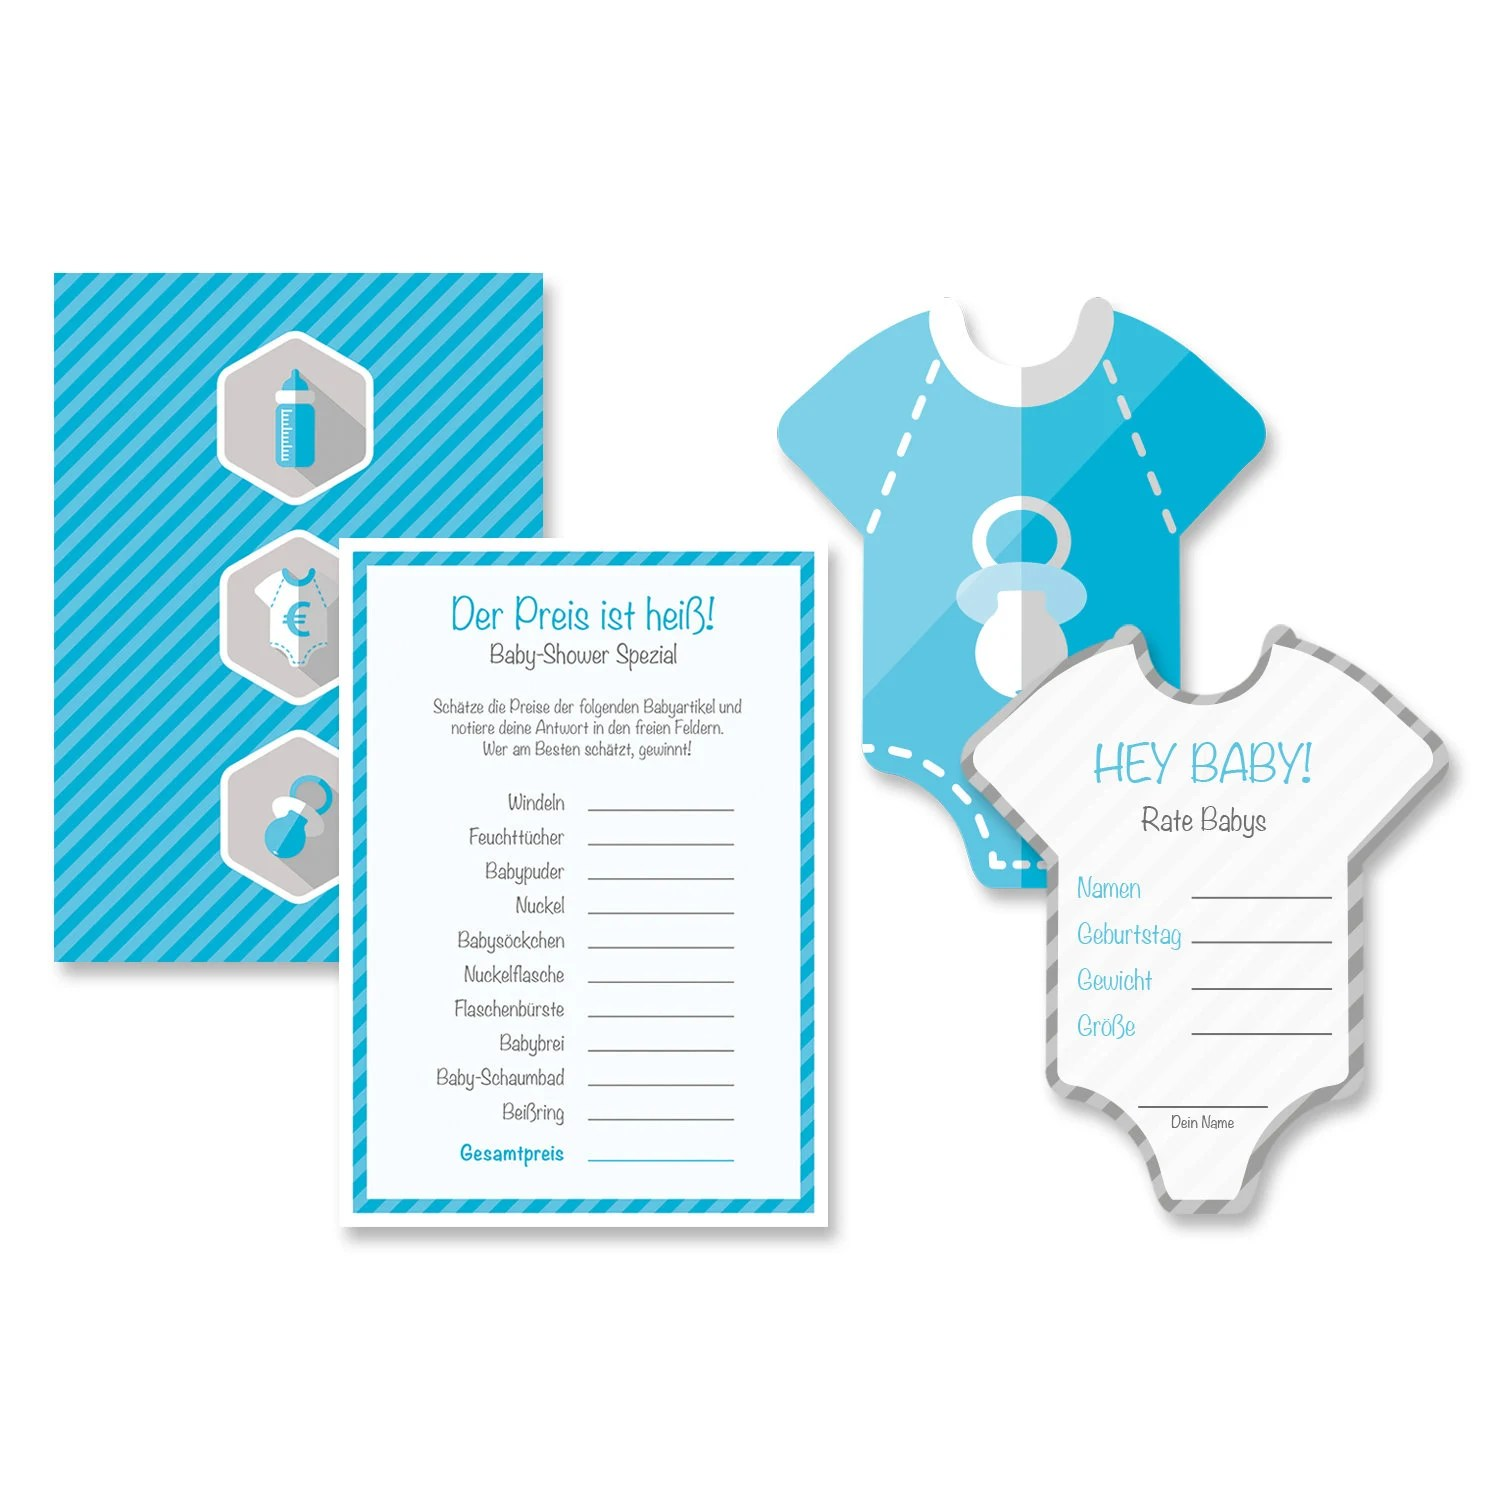 Geburtstag Party Set Baby Shower Baby Shower 16 Piece Game Set Boy Blue Party Game Quiz Game Invitation Party Souvenir Invitation Gift Party Card